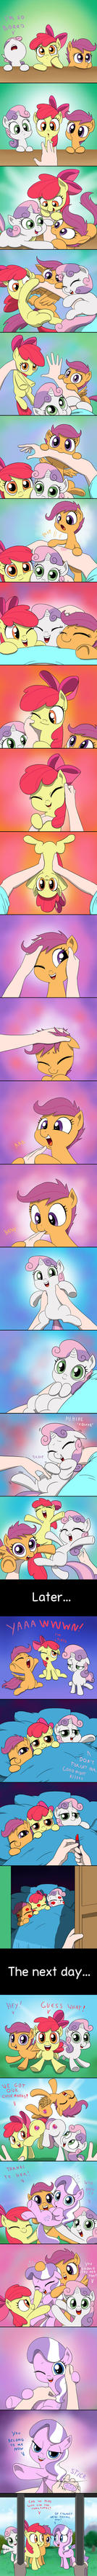 CMC Simulator by doubleWbrothers